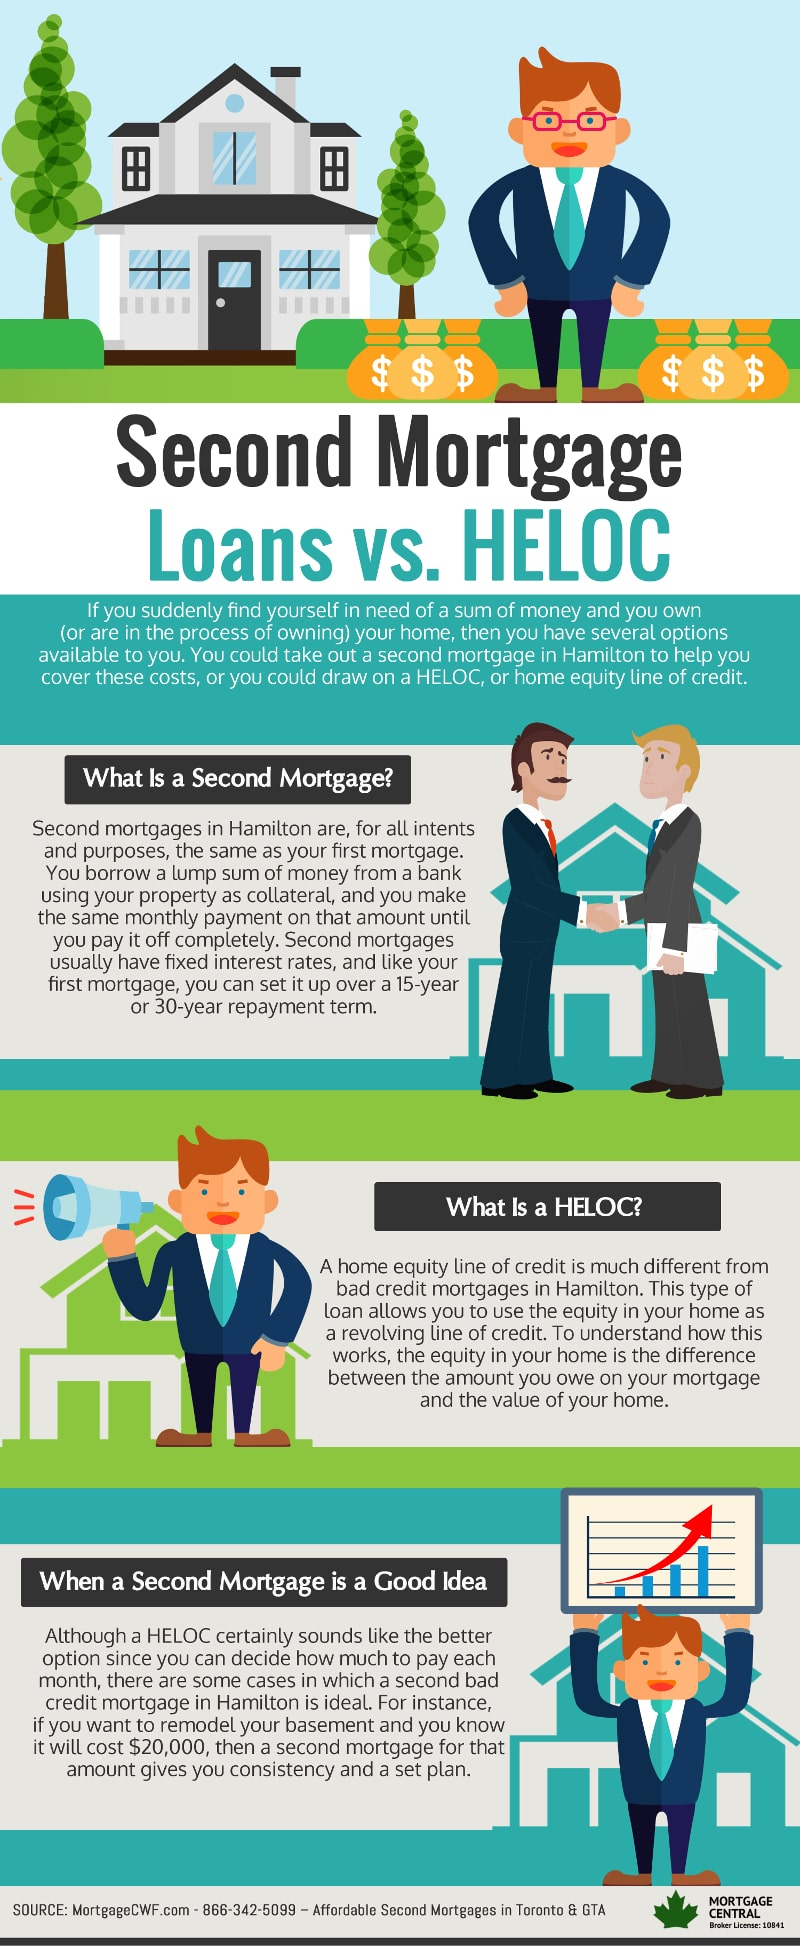 Second Mortgage Loans vs. HELOC - Infographic